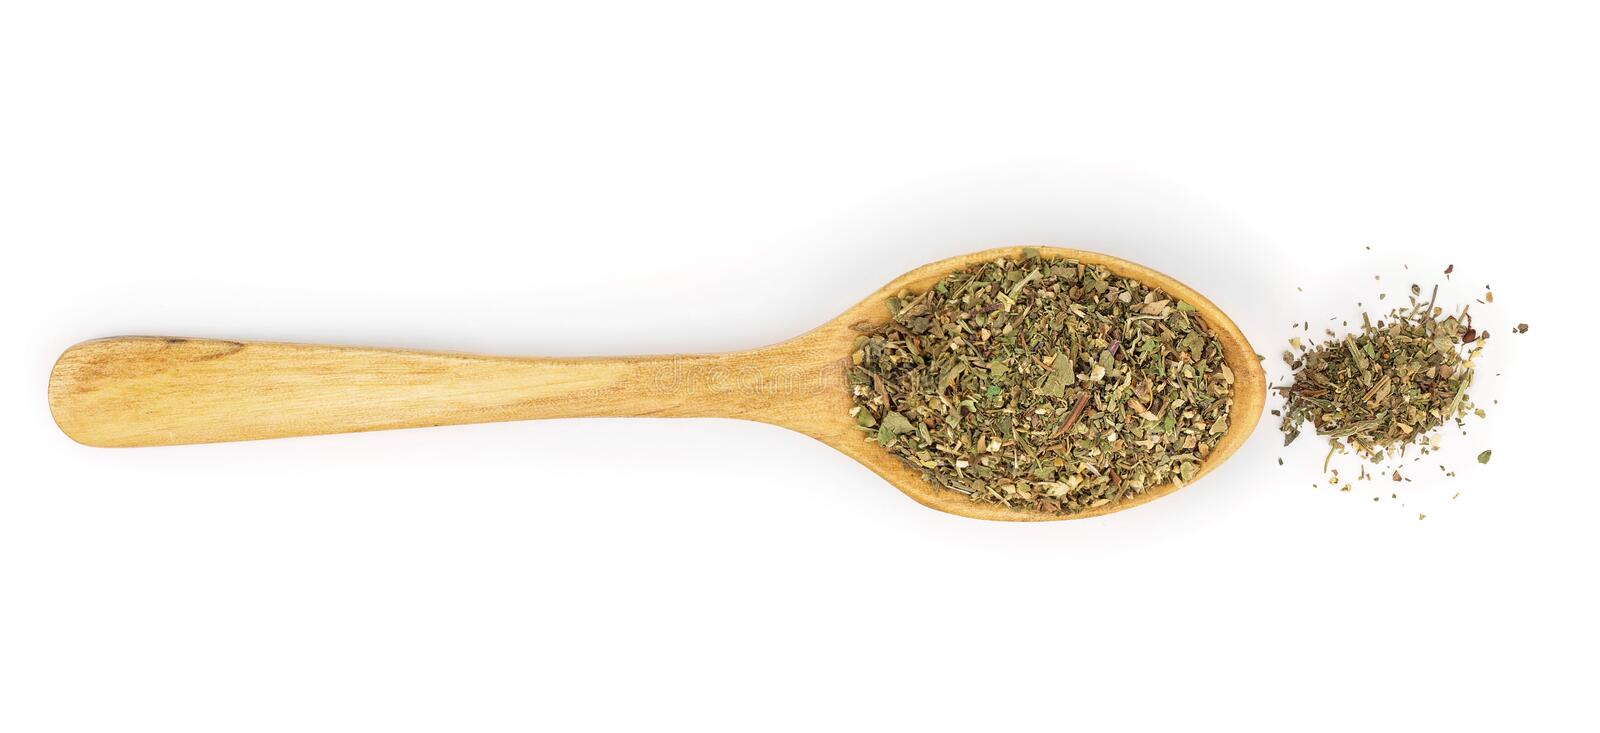 Mix Provencal herbs in wooden spoon isolated on white background. Top view.  stock photos